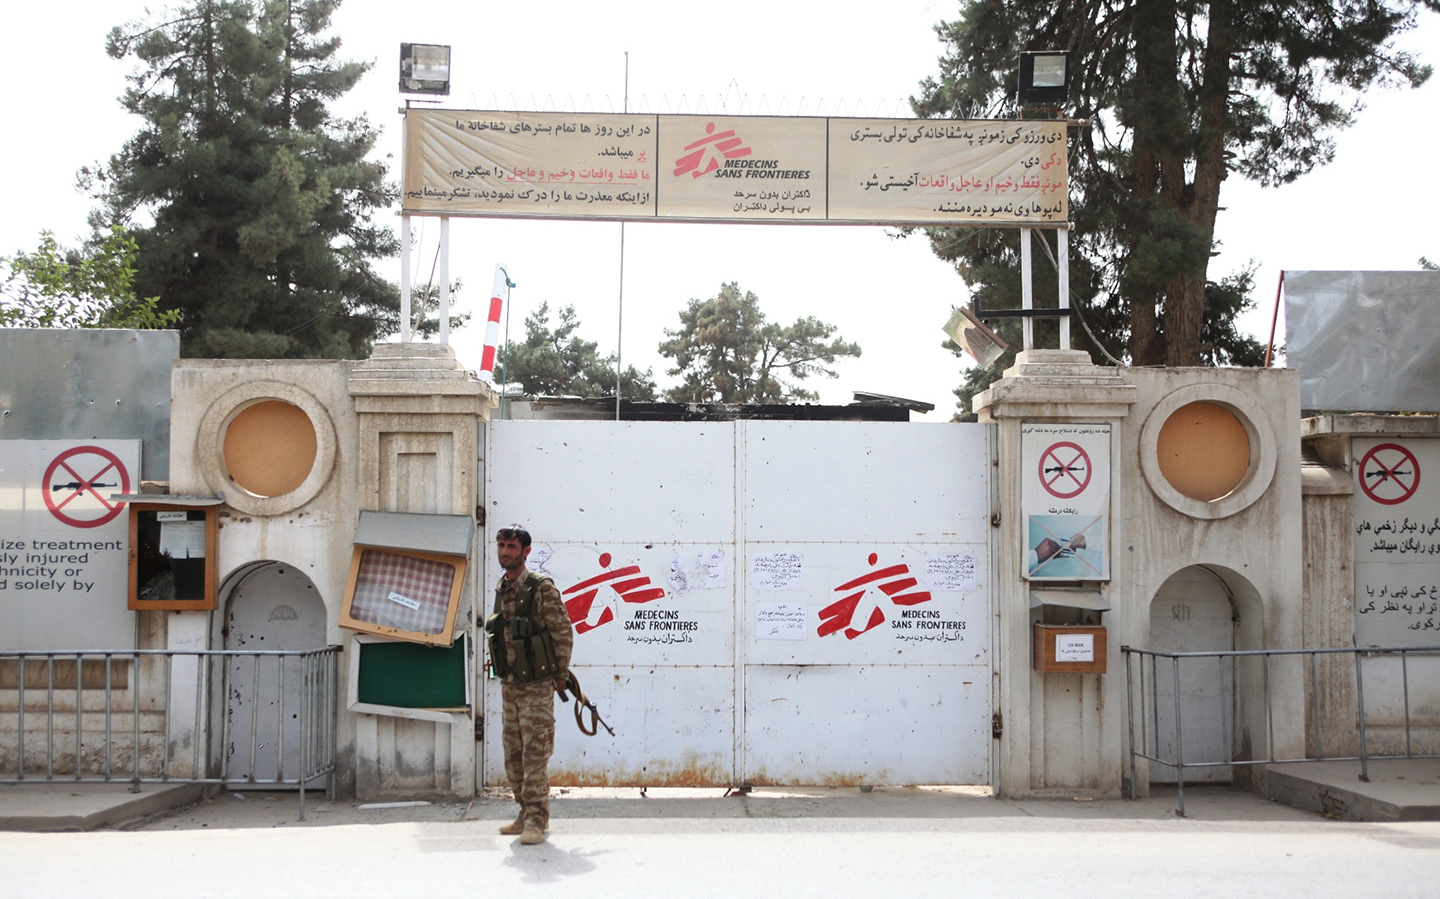 (151011) -- KUNDUZ, Oct. 11, 2015 (Xinhua) -- A policeman stands guard in front of Medecins Sans Frontieres (MSF) hospital destroyed by a U.S. airstrike in Kunduz city, capital of northern Kunduz province of Afghanistan, Oct. 11, 2015. The U.S. military, which allegedly carried out air strikes in support of the Afghan forces, inadvertently hit a hospital run by MSF last Saturday, killing 22, including 12 medical staff and injuring 37 others. (Xinhua/Omid) (Newscom TagID: xnaphotos565469.jpg) [Photo via Newscom]